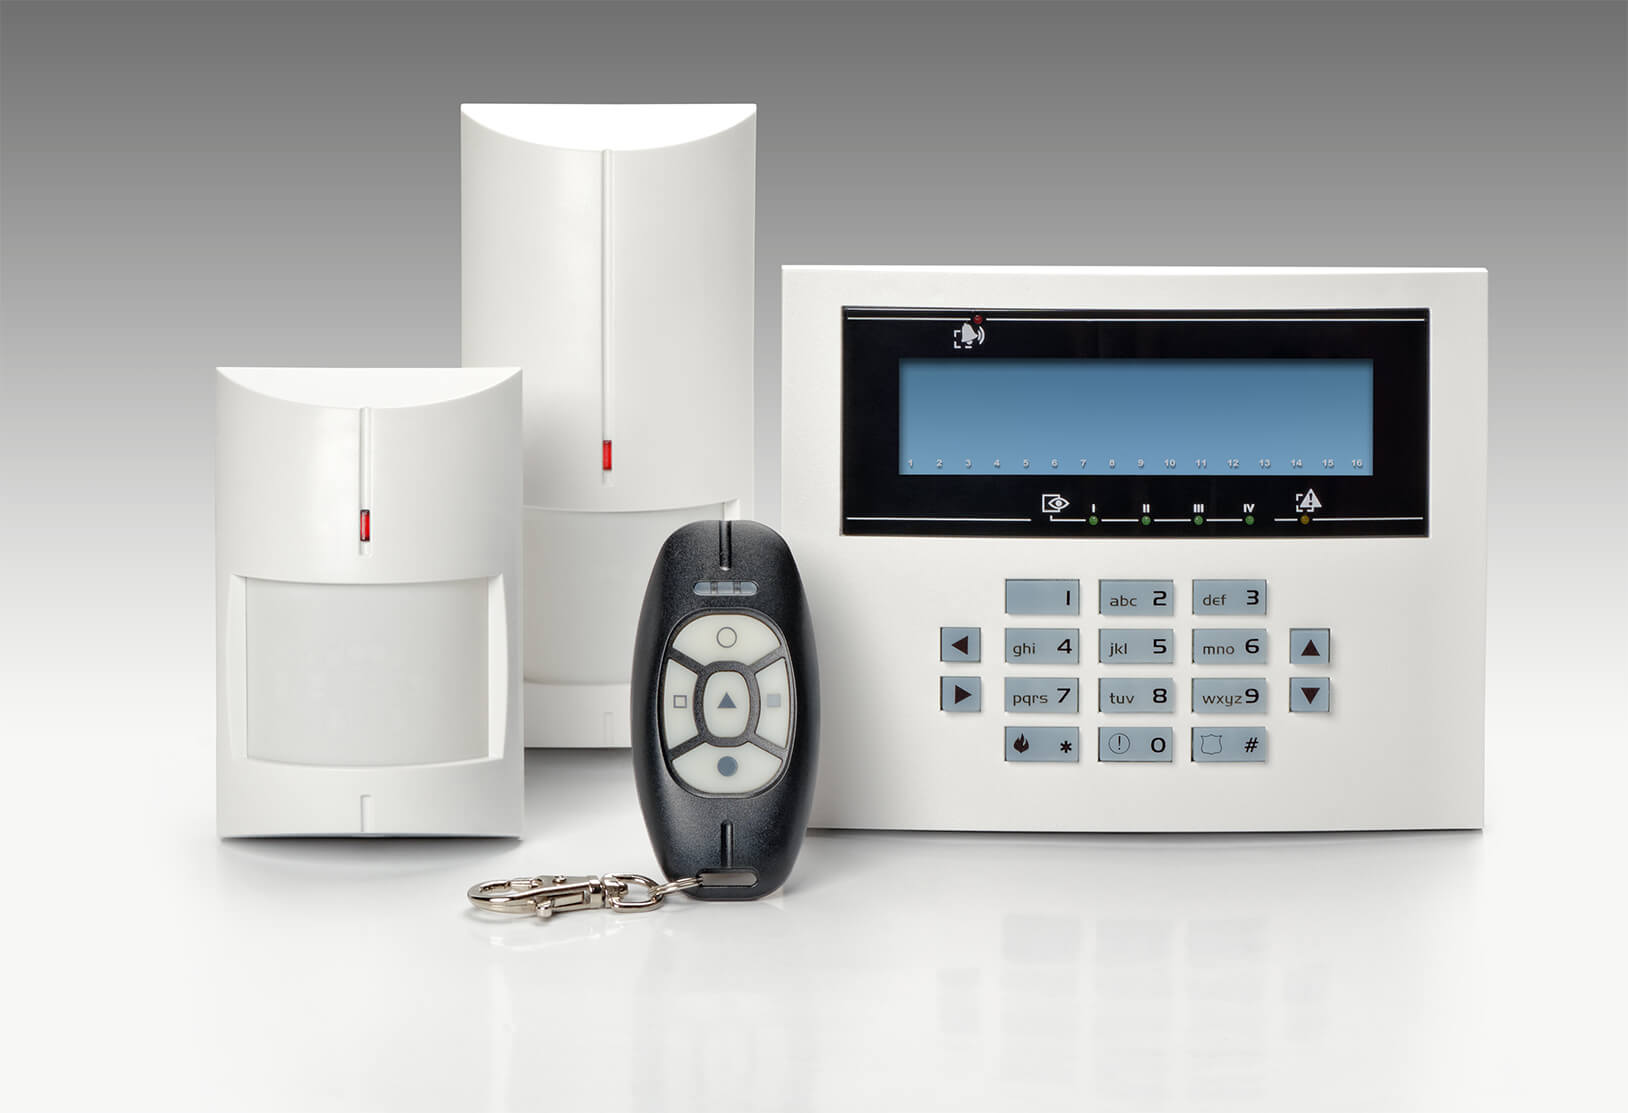 Commercial Burglar Alarms For Business in South London  - Local South London burglar alarm company.Call 02078872244 - Dedicated to Safety & Security. Companies, shops and homes ..